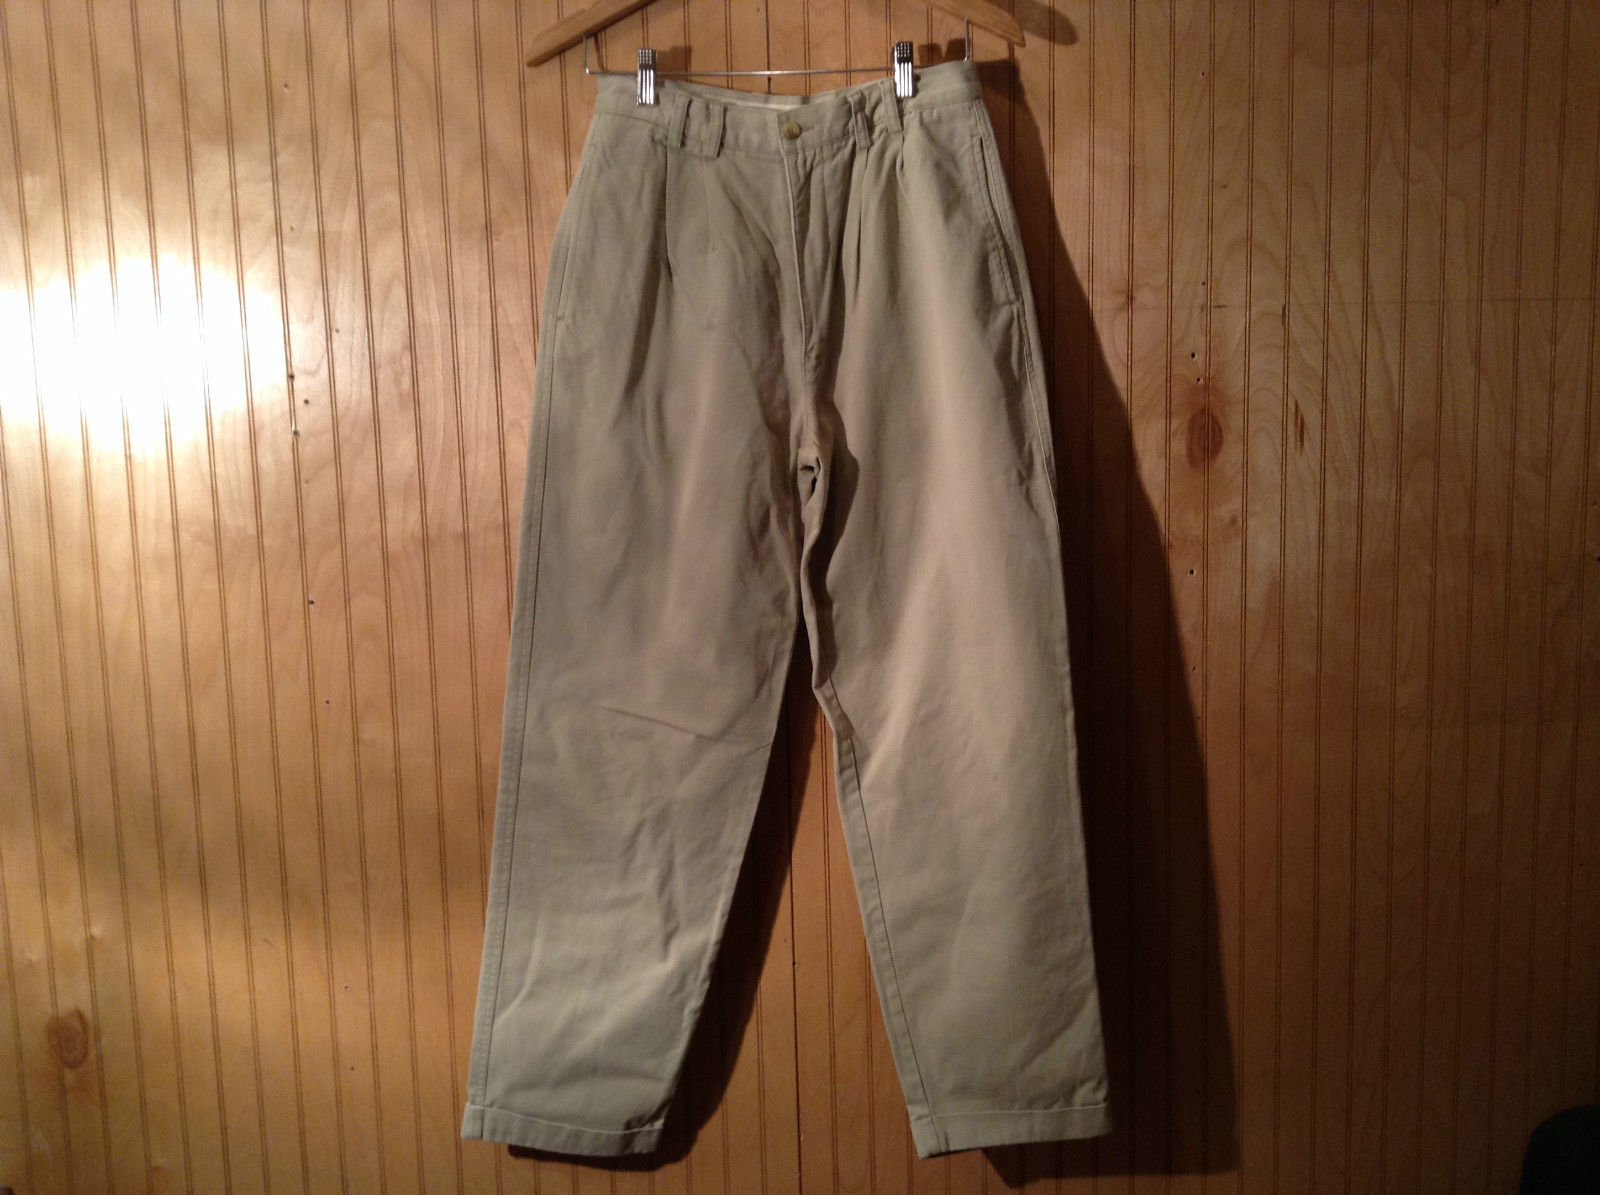 G H Bass and Company Gray Tan Khaki Casual Cotton Pants Size 29 by 30